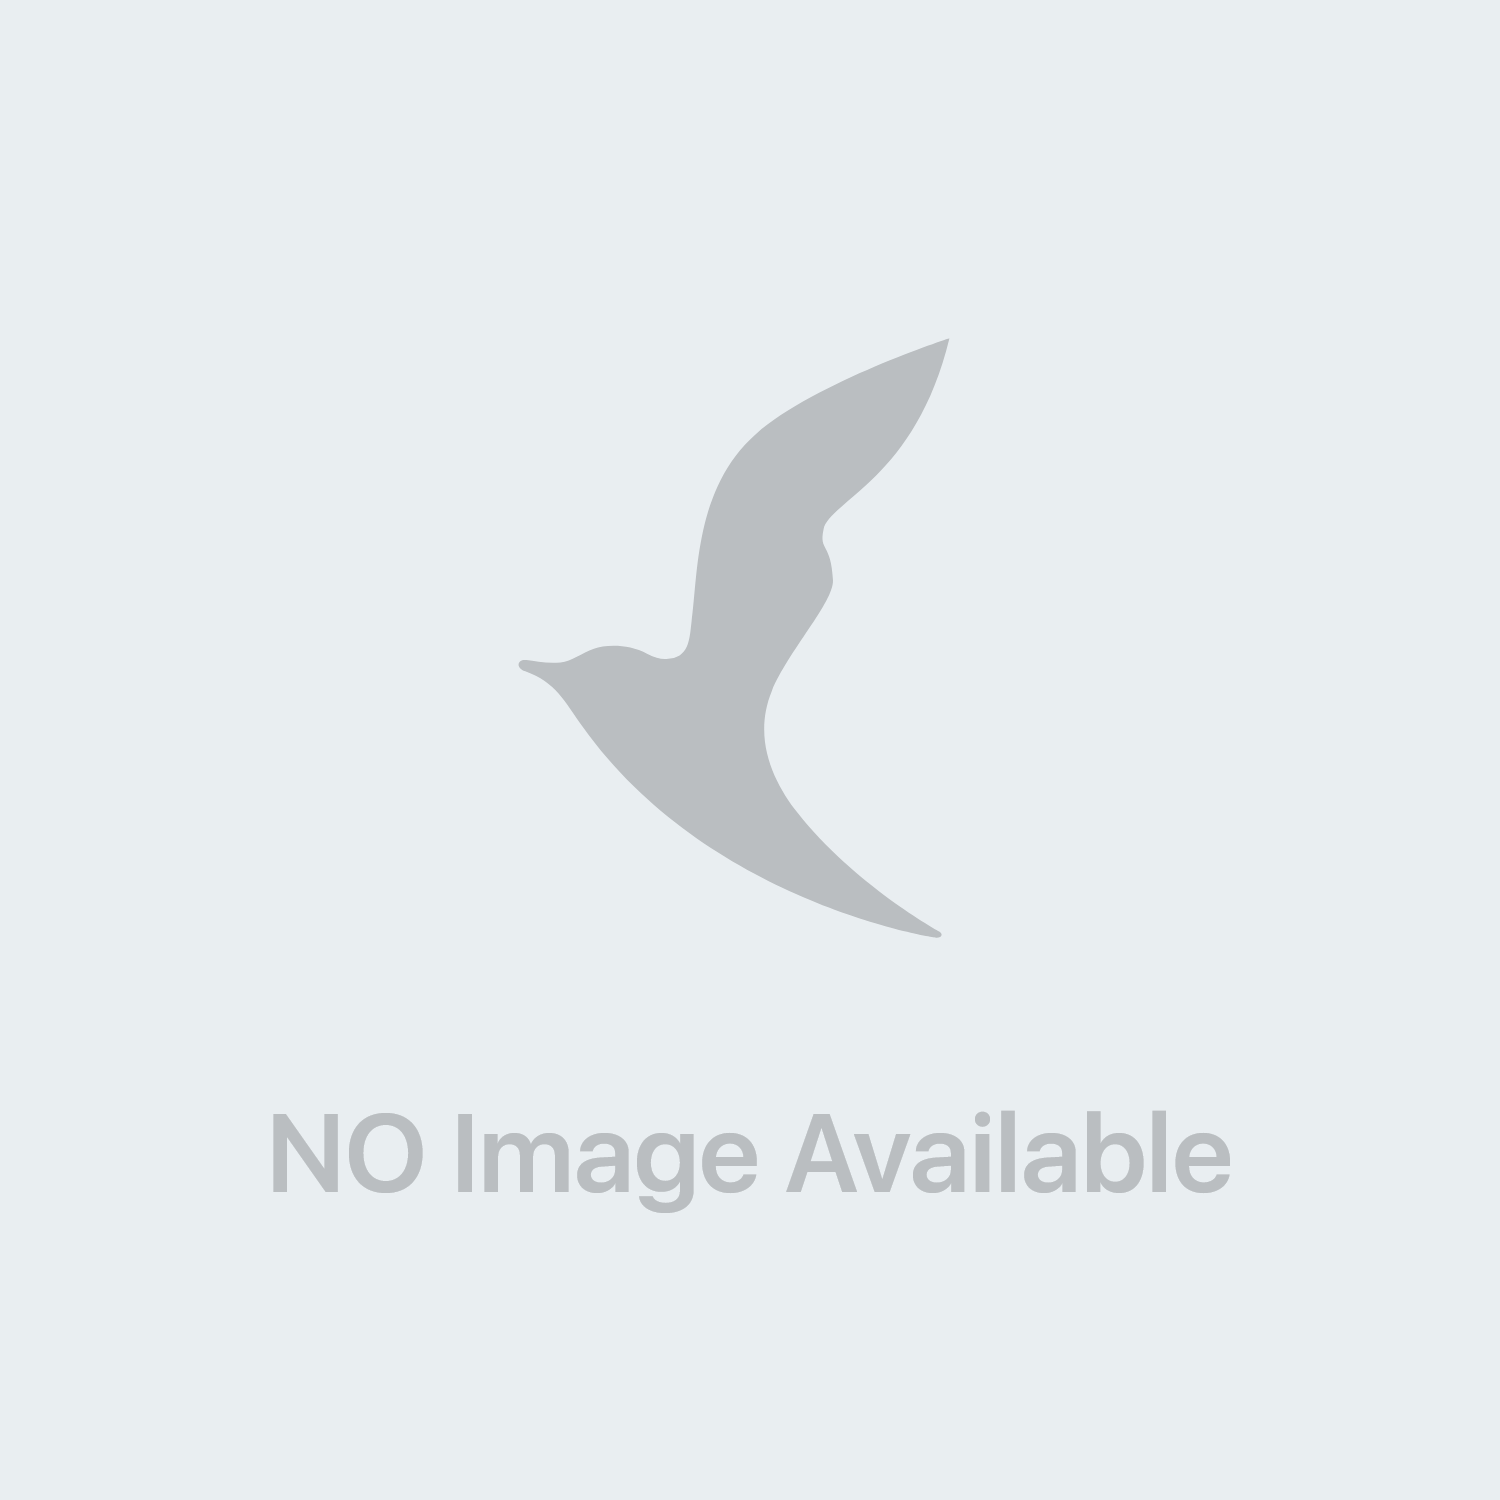 Valontan Adulti 100 mg Dimenidrinato Antinausea 4 Compresse Rivestite